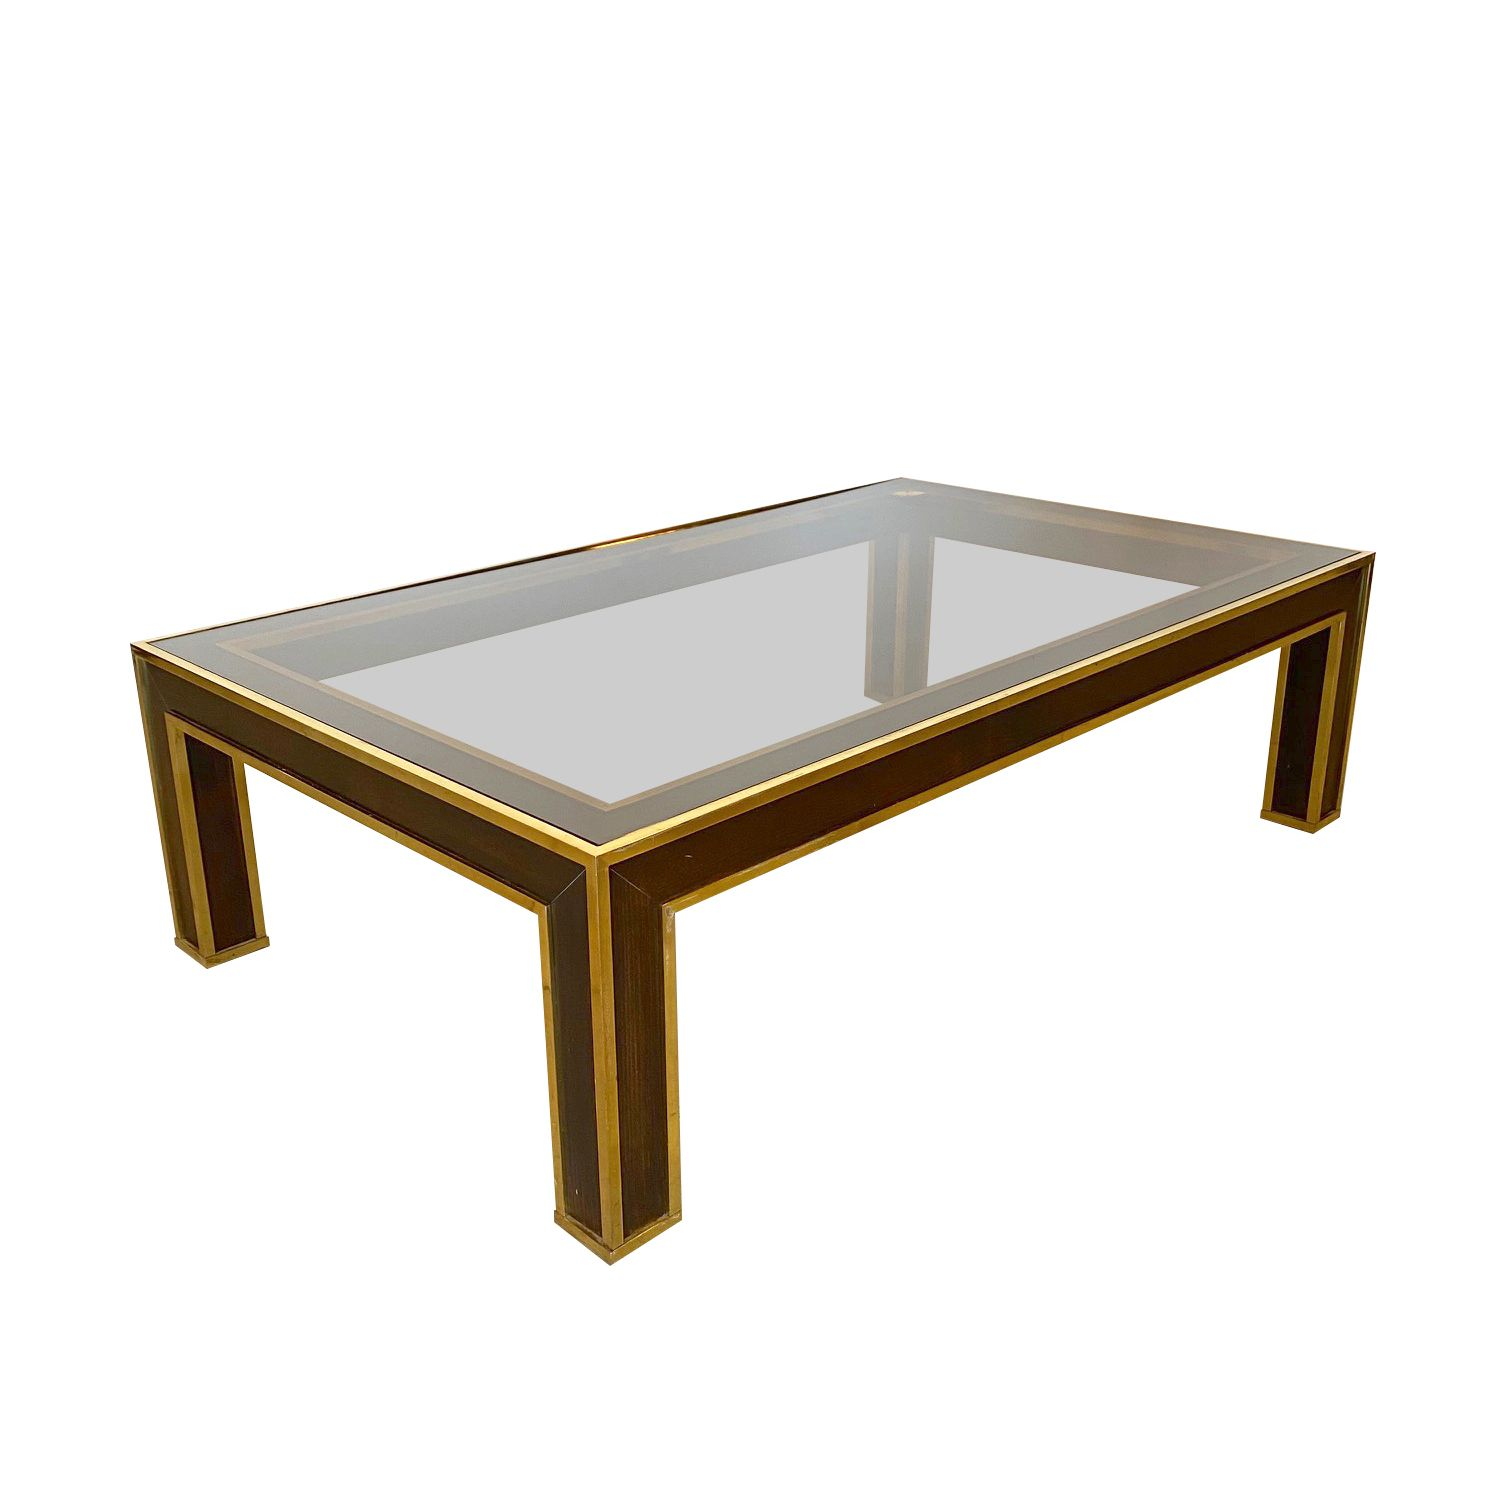 Coffee Table In Wood And Brass 70s Coffee Table Wood Glass Table [ 1512 x 1512 Pixel ]